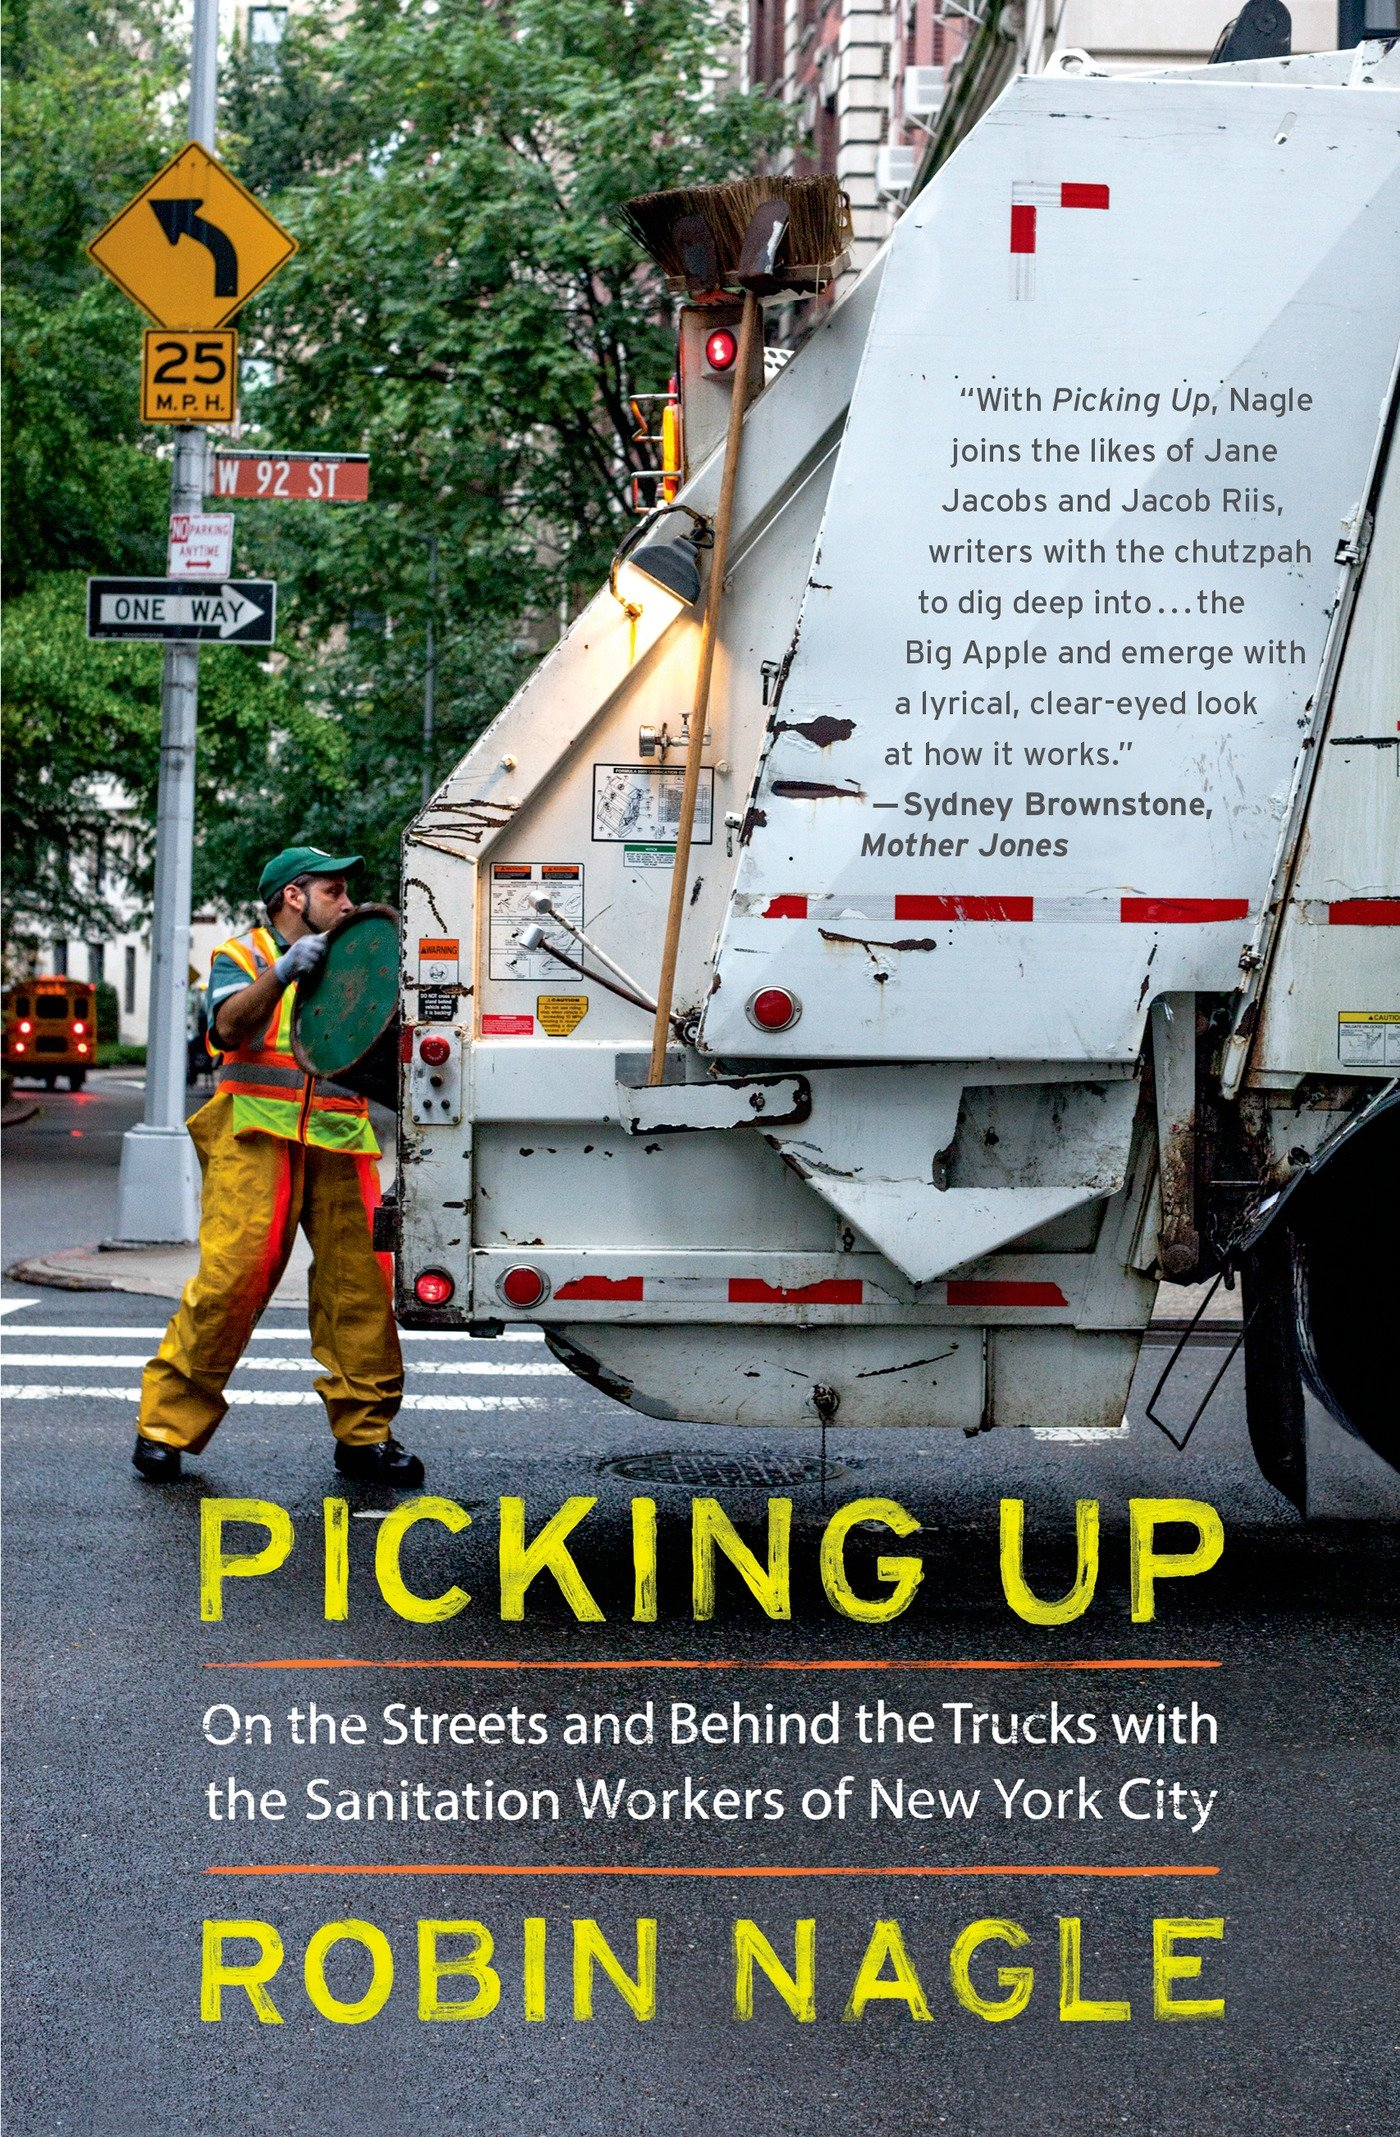 amazoncom picking up on the streets and behind the trucks with the sanitation workers of new york city 9780374534271 robin nagle books - Sanitation Worker Job Description